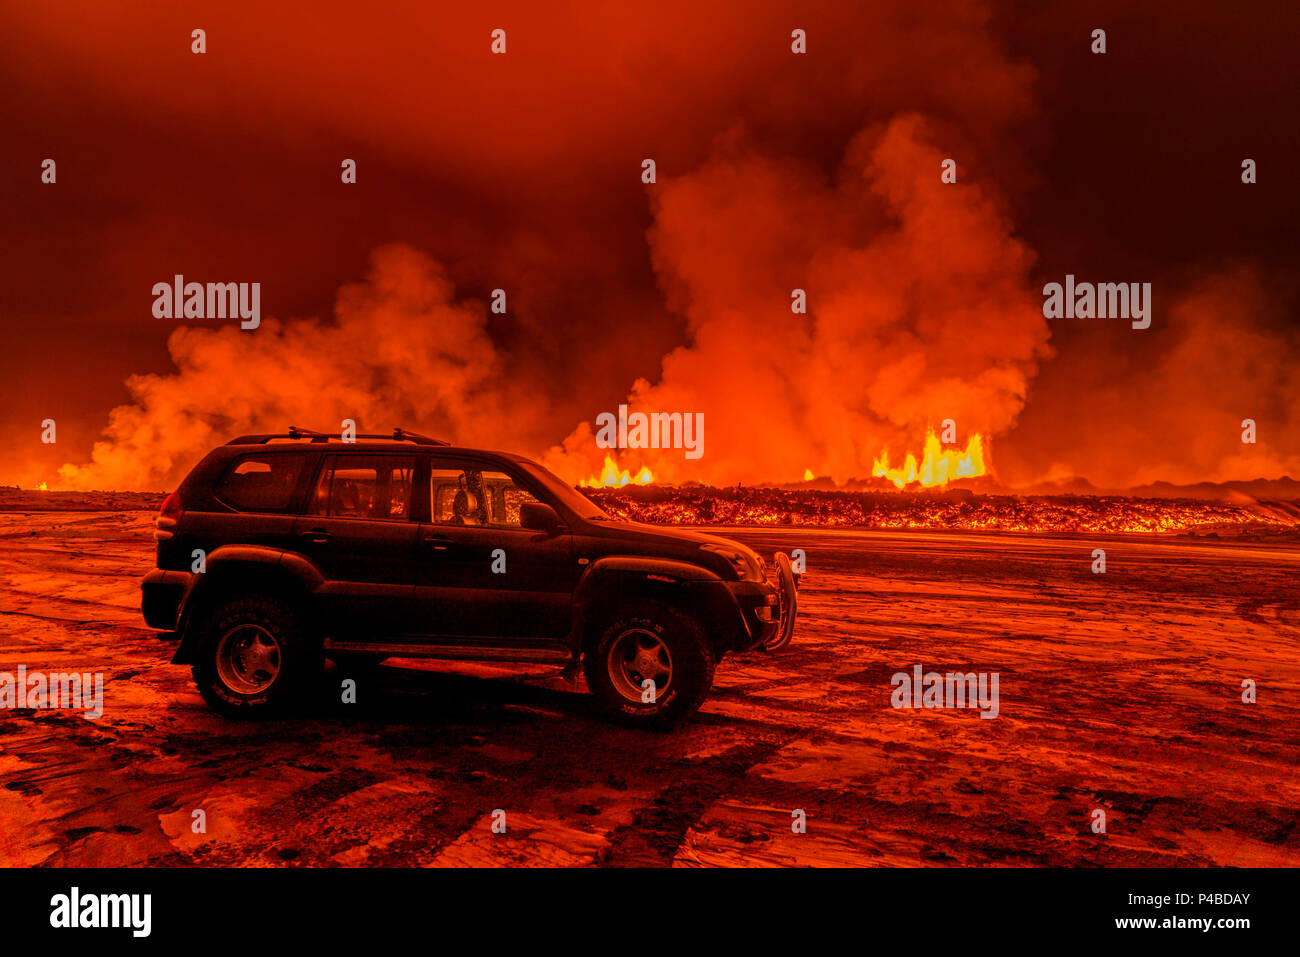 SUV close to the Eruption at Holuhraun, near the Bardarbunga Volcano, Iceland. August 29, 2014 a fissure eruption started in Holuhraun at the northern end of a magma intrusion, which had moved progressively north, from the Bardarbunga volcano. Picture Date-Sept. 2, 2014 - Stock Image